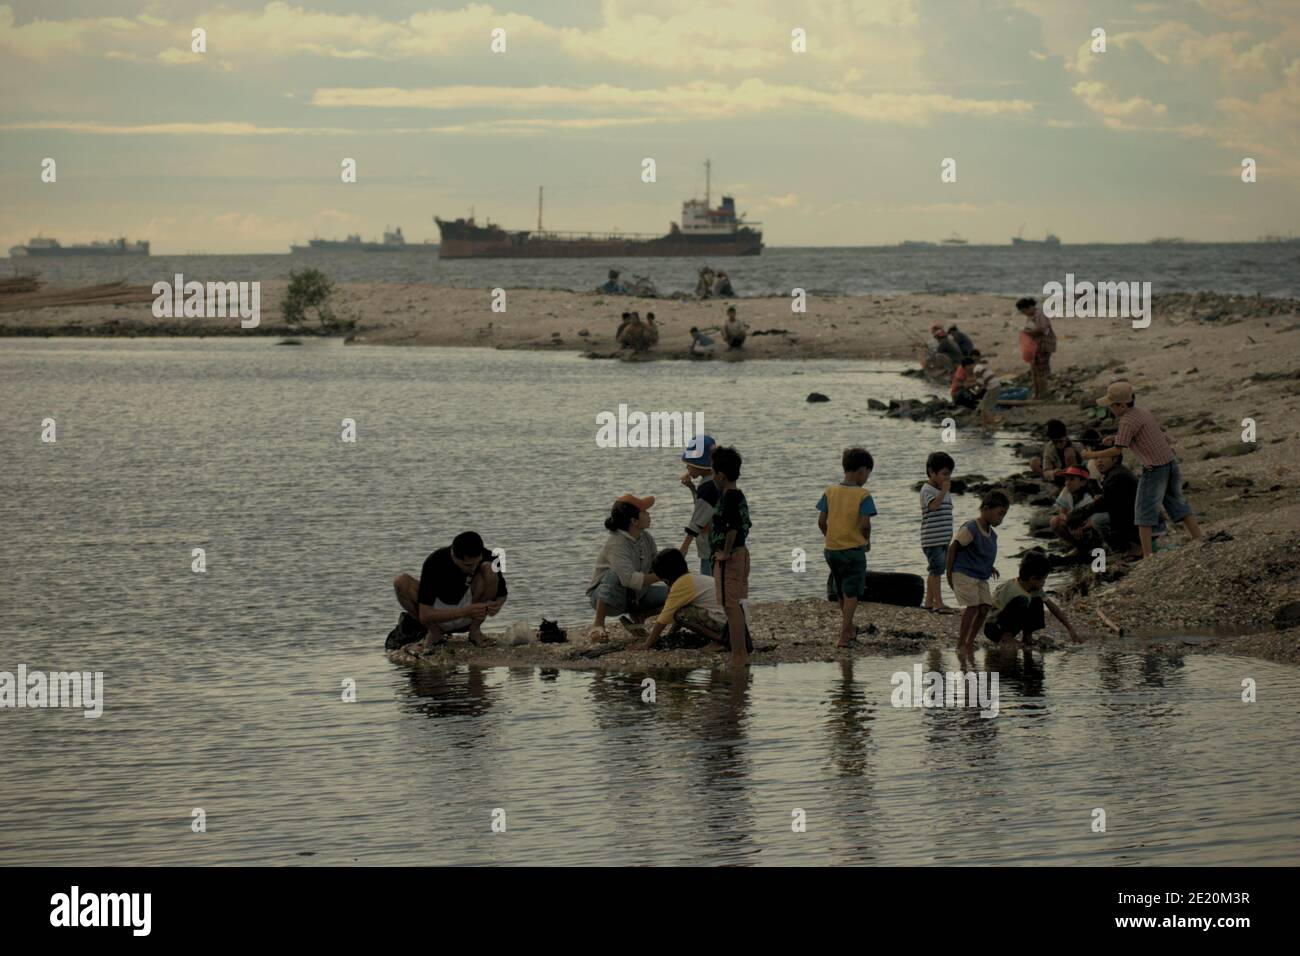 People having recreational time in Cilincing beach, on the coastal area of Jakarta, Indonesia. Port of Jakarta's traffics can be seen in the distance. Archival photo (2008). Stock Photo